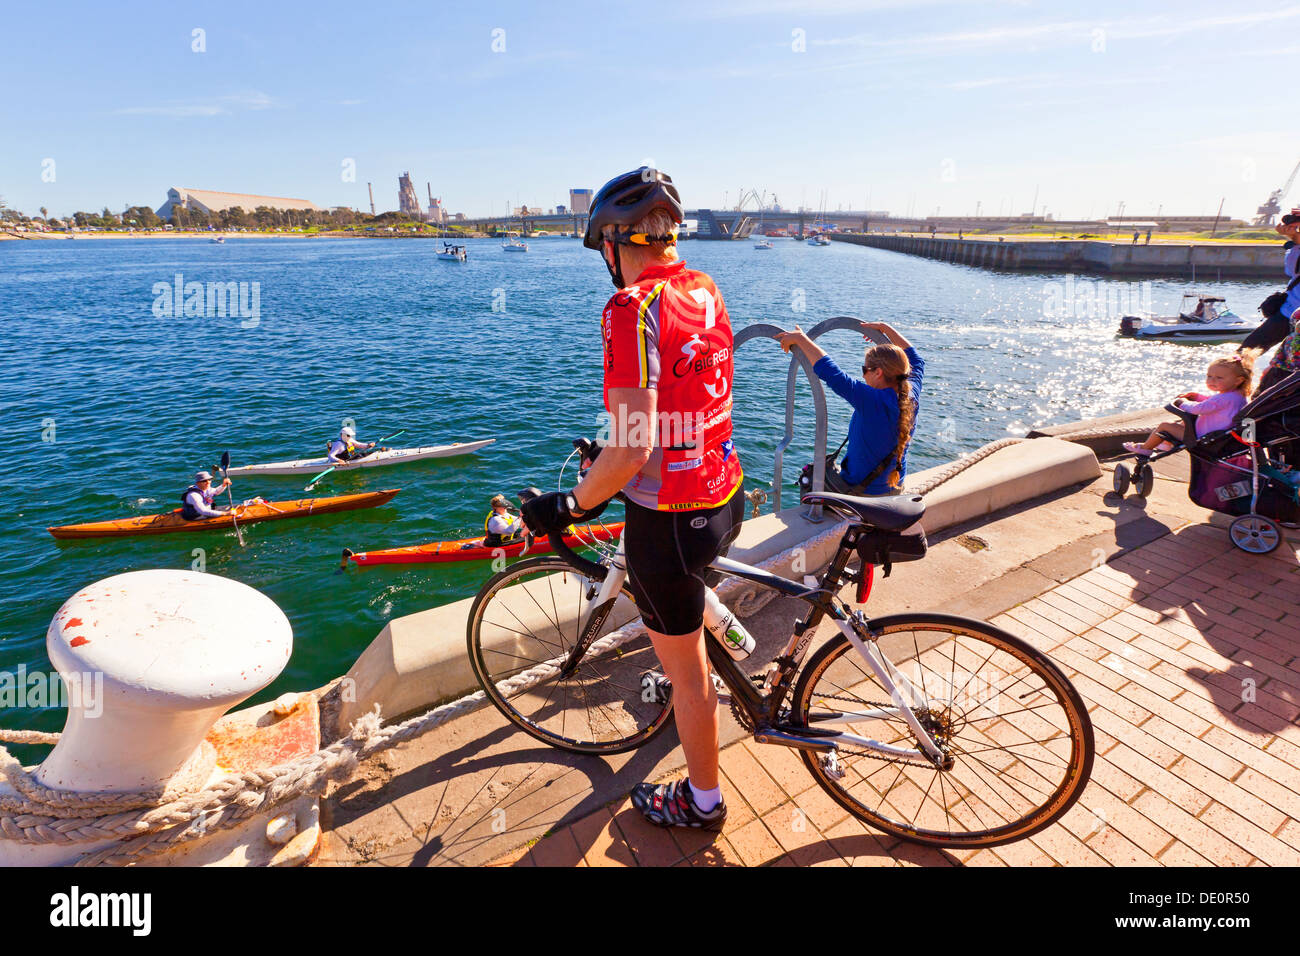 A female cyclist watches people canoing along the Port River at Port Adelaide in South Australia - Stock Image